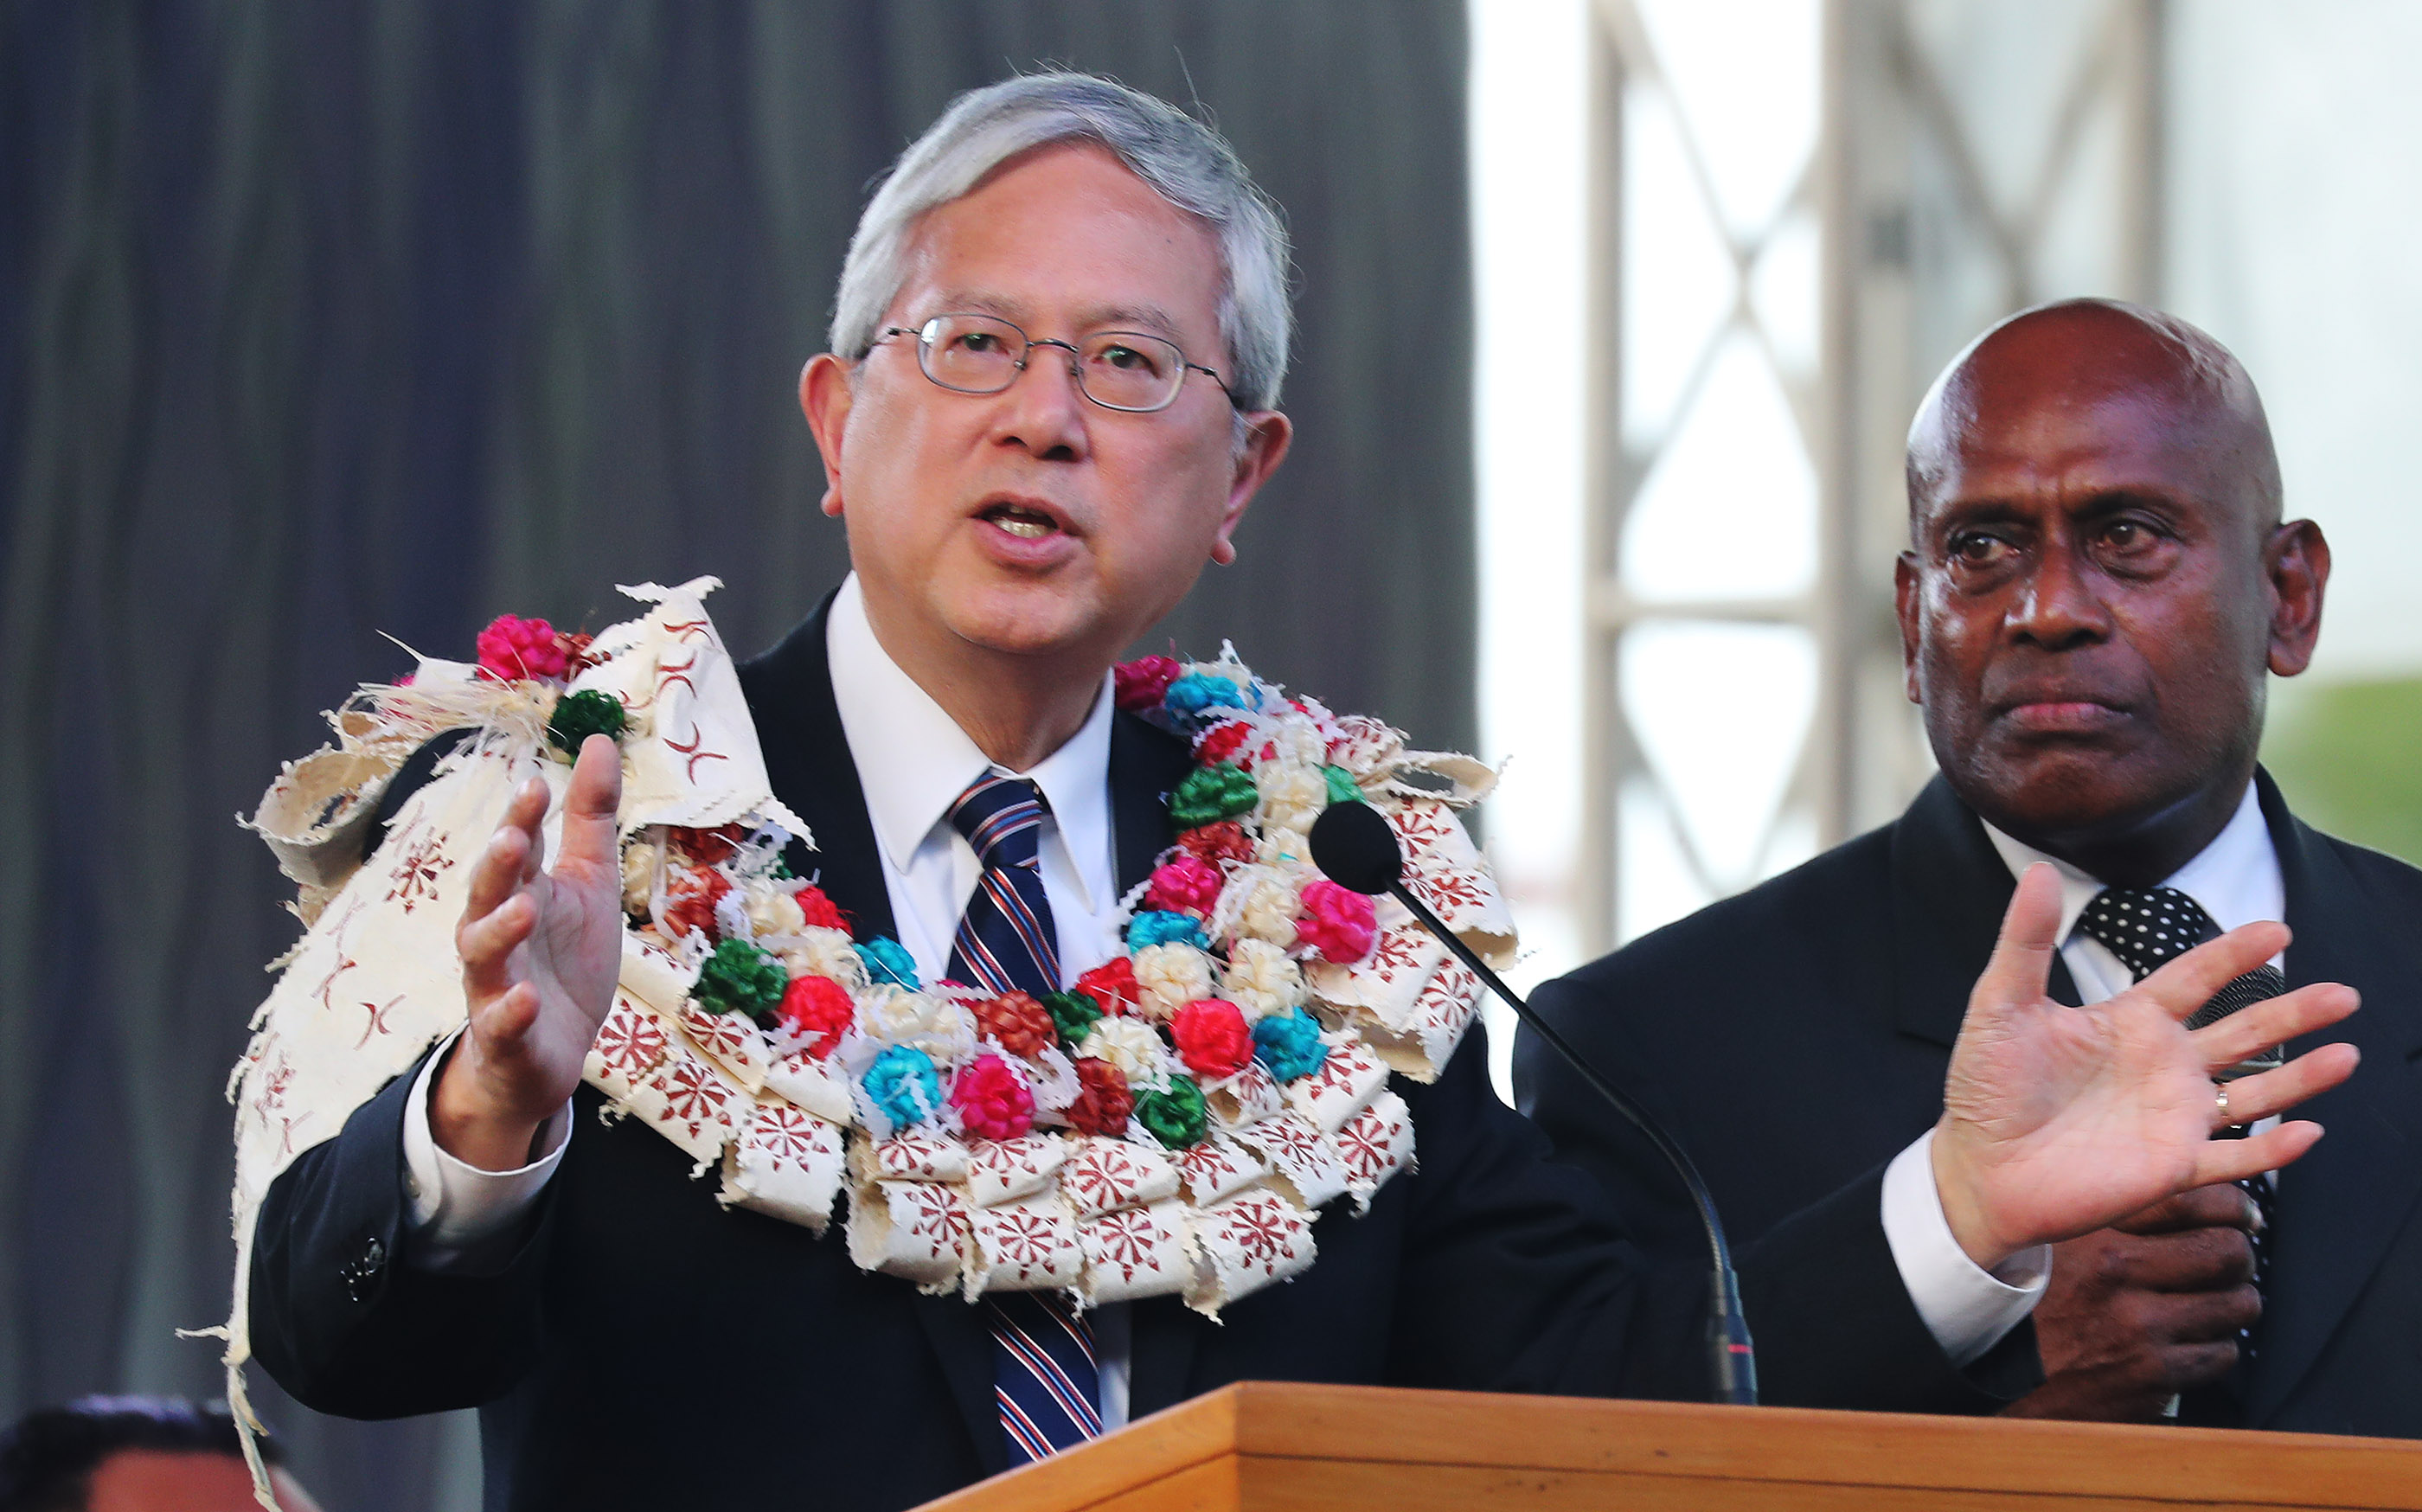 Elder Elder Gerrit W. Gong, of The Church of Jesus Christ of Latter-day Saints' Quorum of the Twelve Apostles speaks during a devotional in Nausori, Fiji, on May 22, 2019.